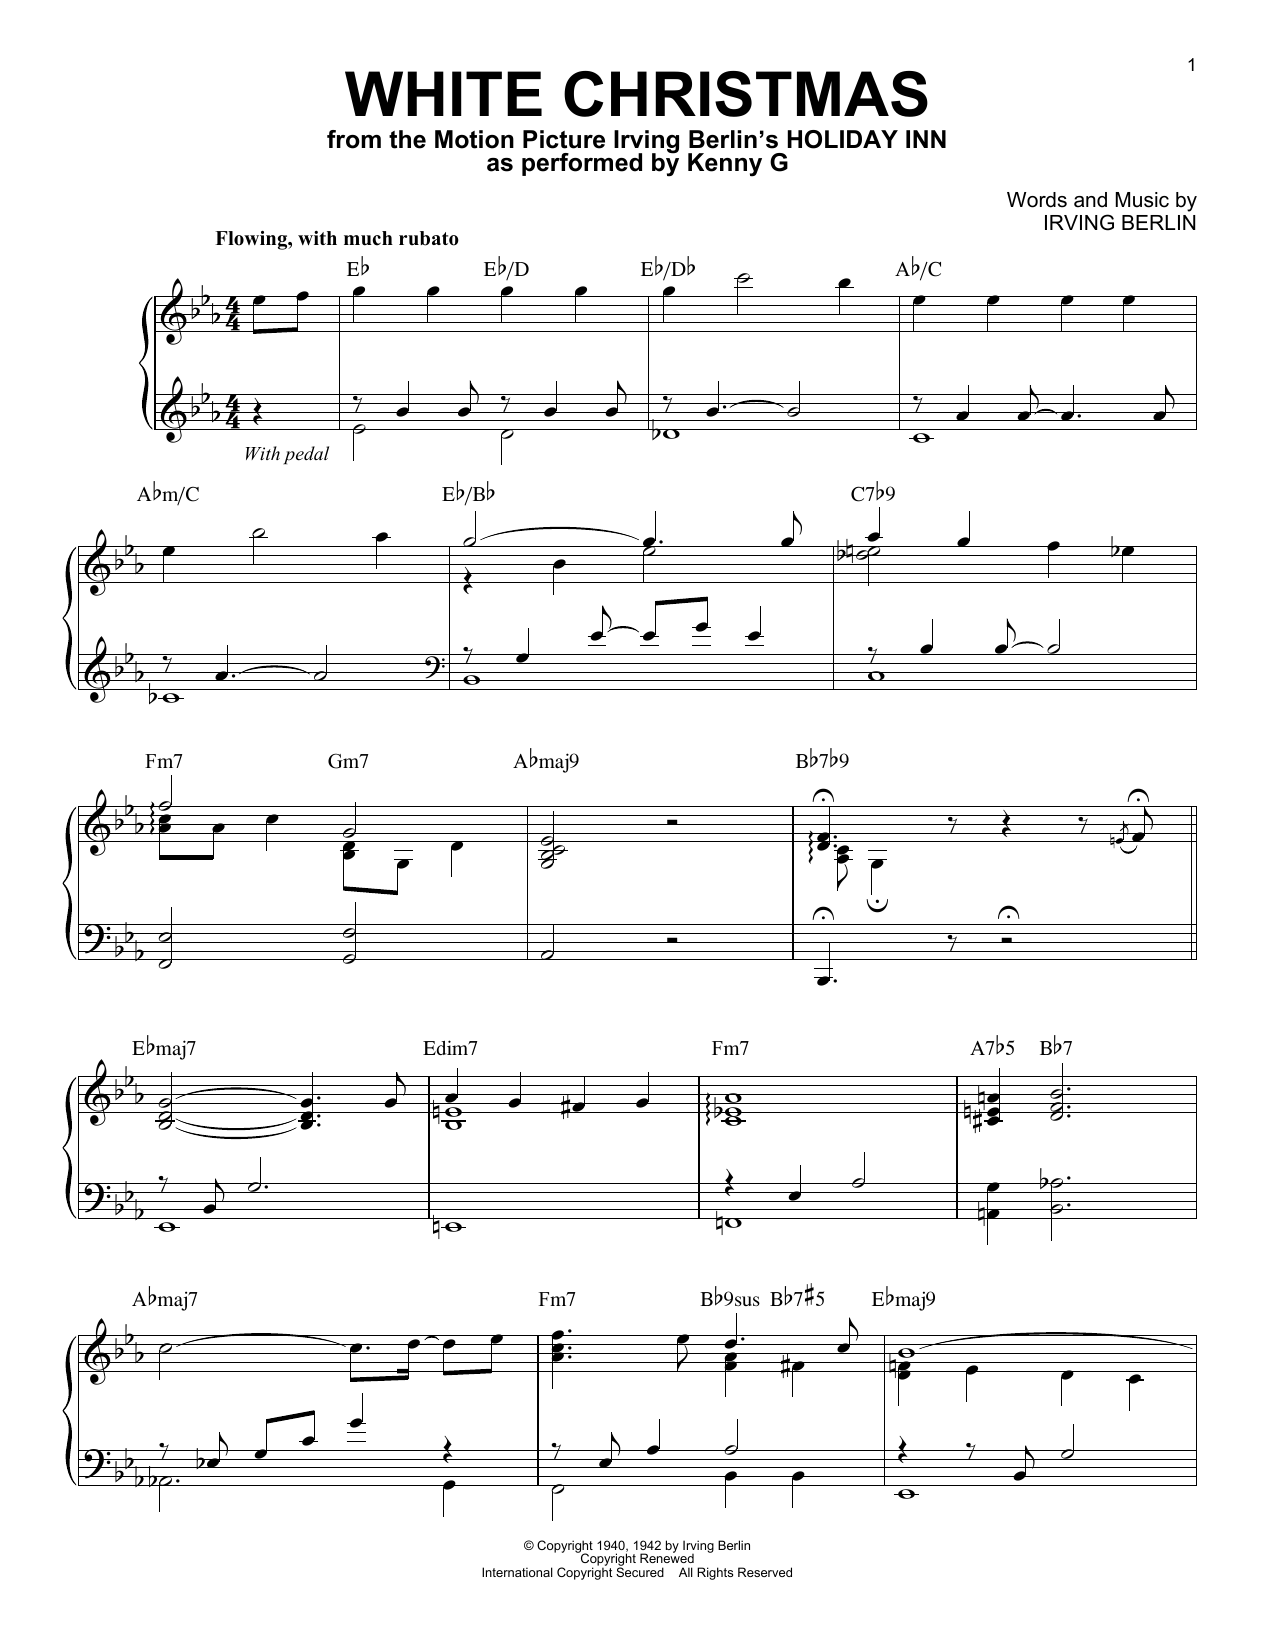 White Christmas Sheet Music.Kenny G White Christmas Sheet Music Notes Chords Download Printable Piano Solo Sku 415734